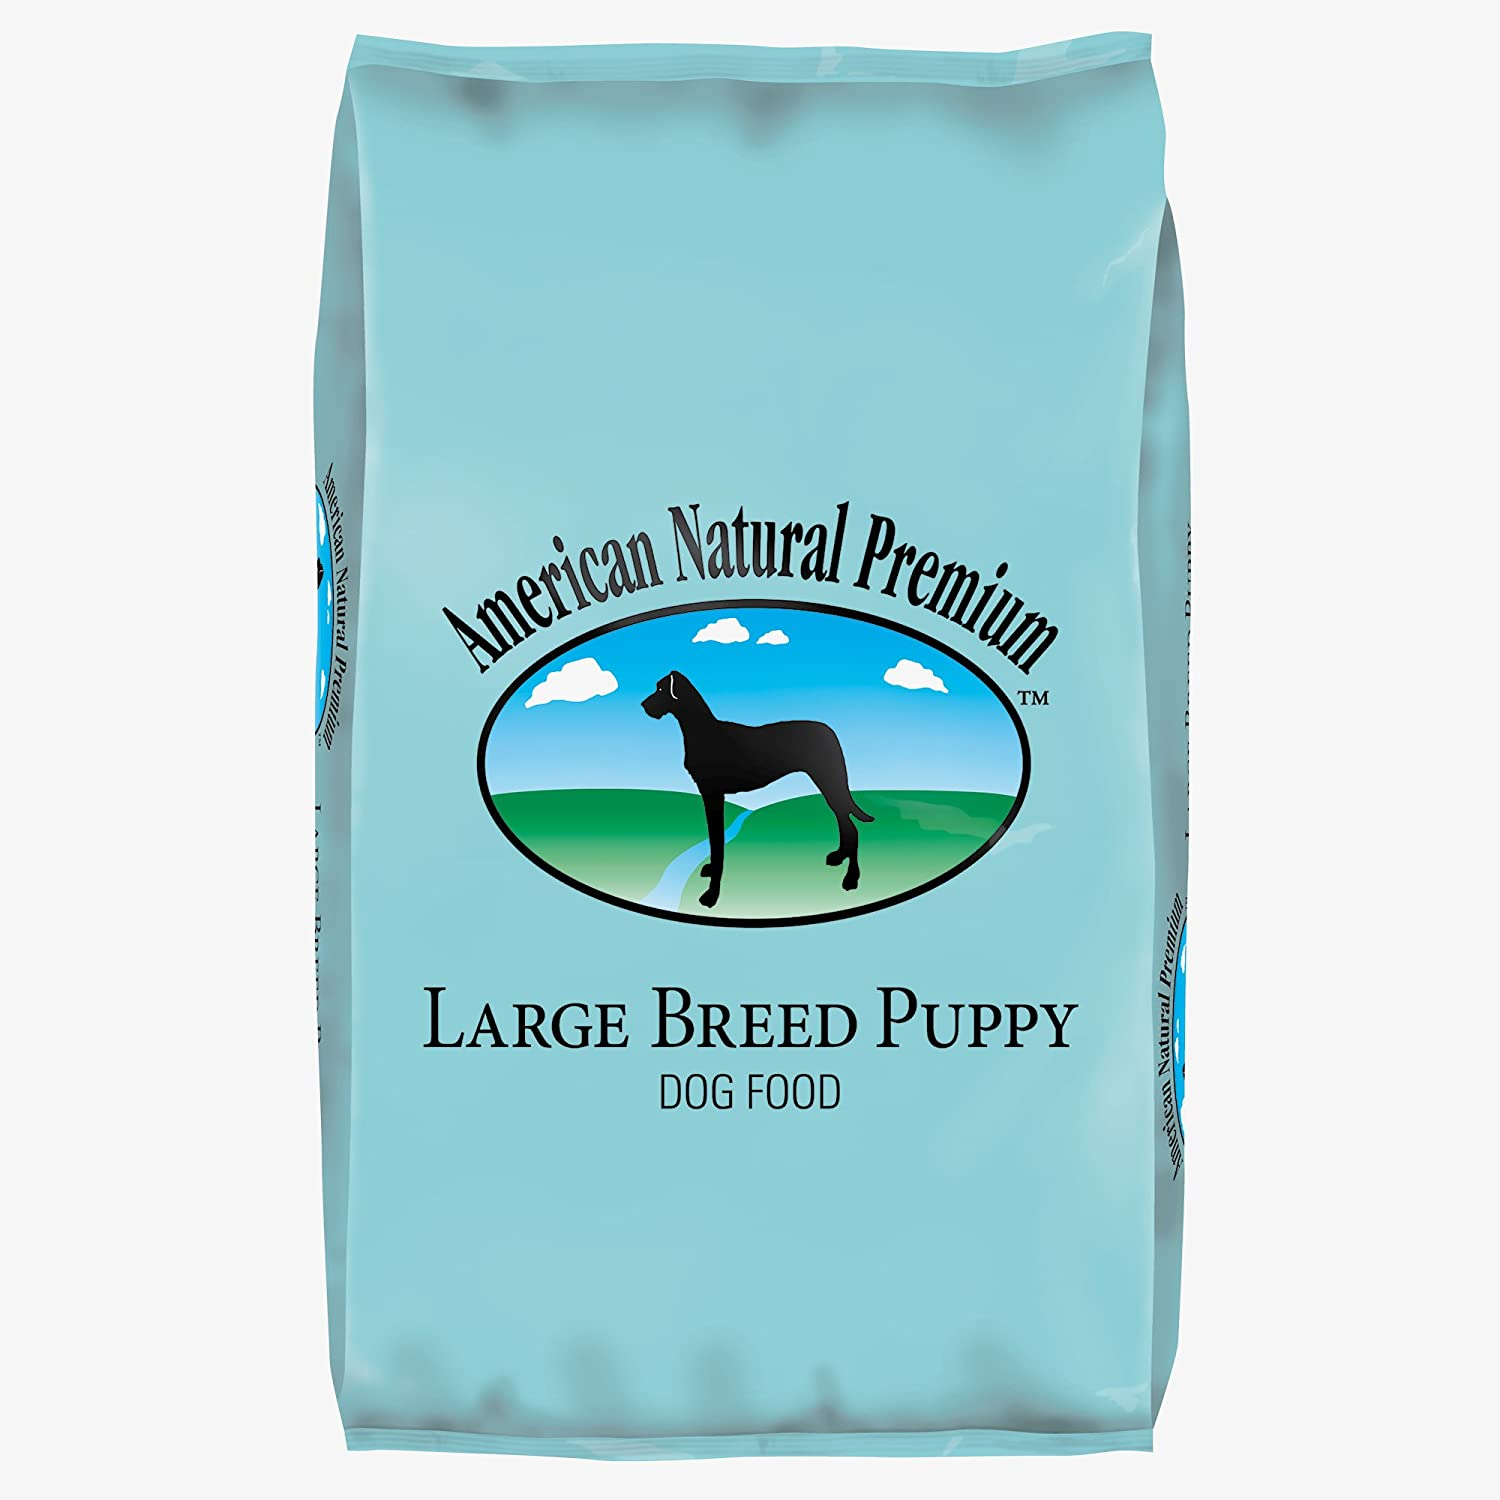 ANP Large Breed Puppy 30 lb (bluee)